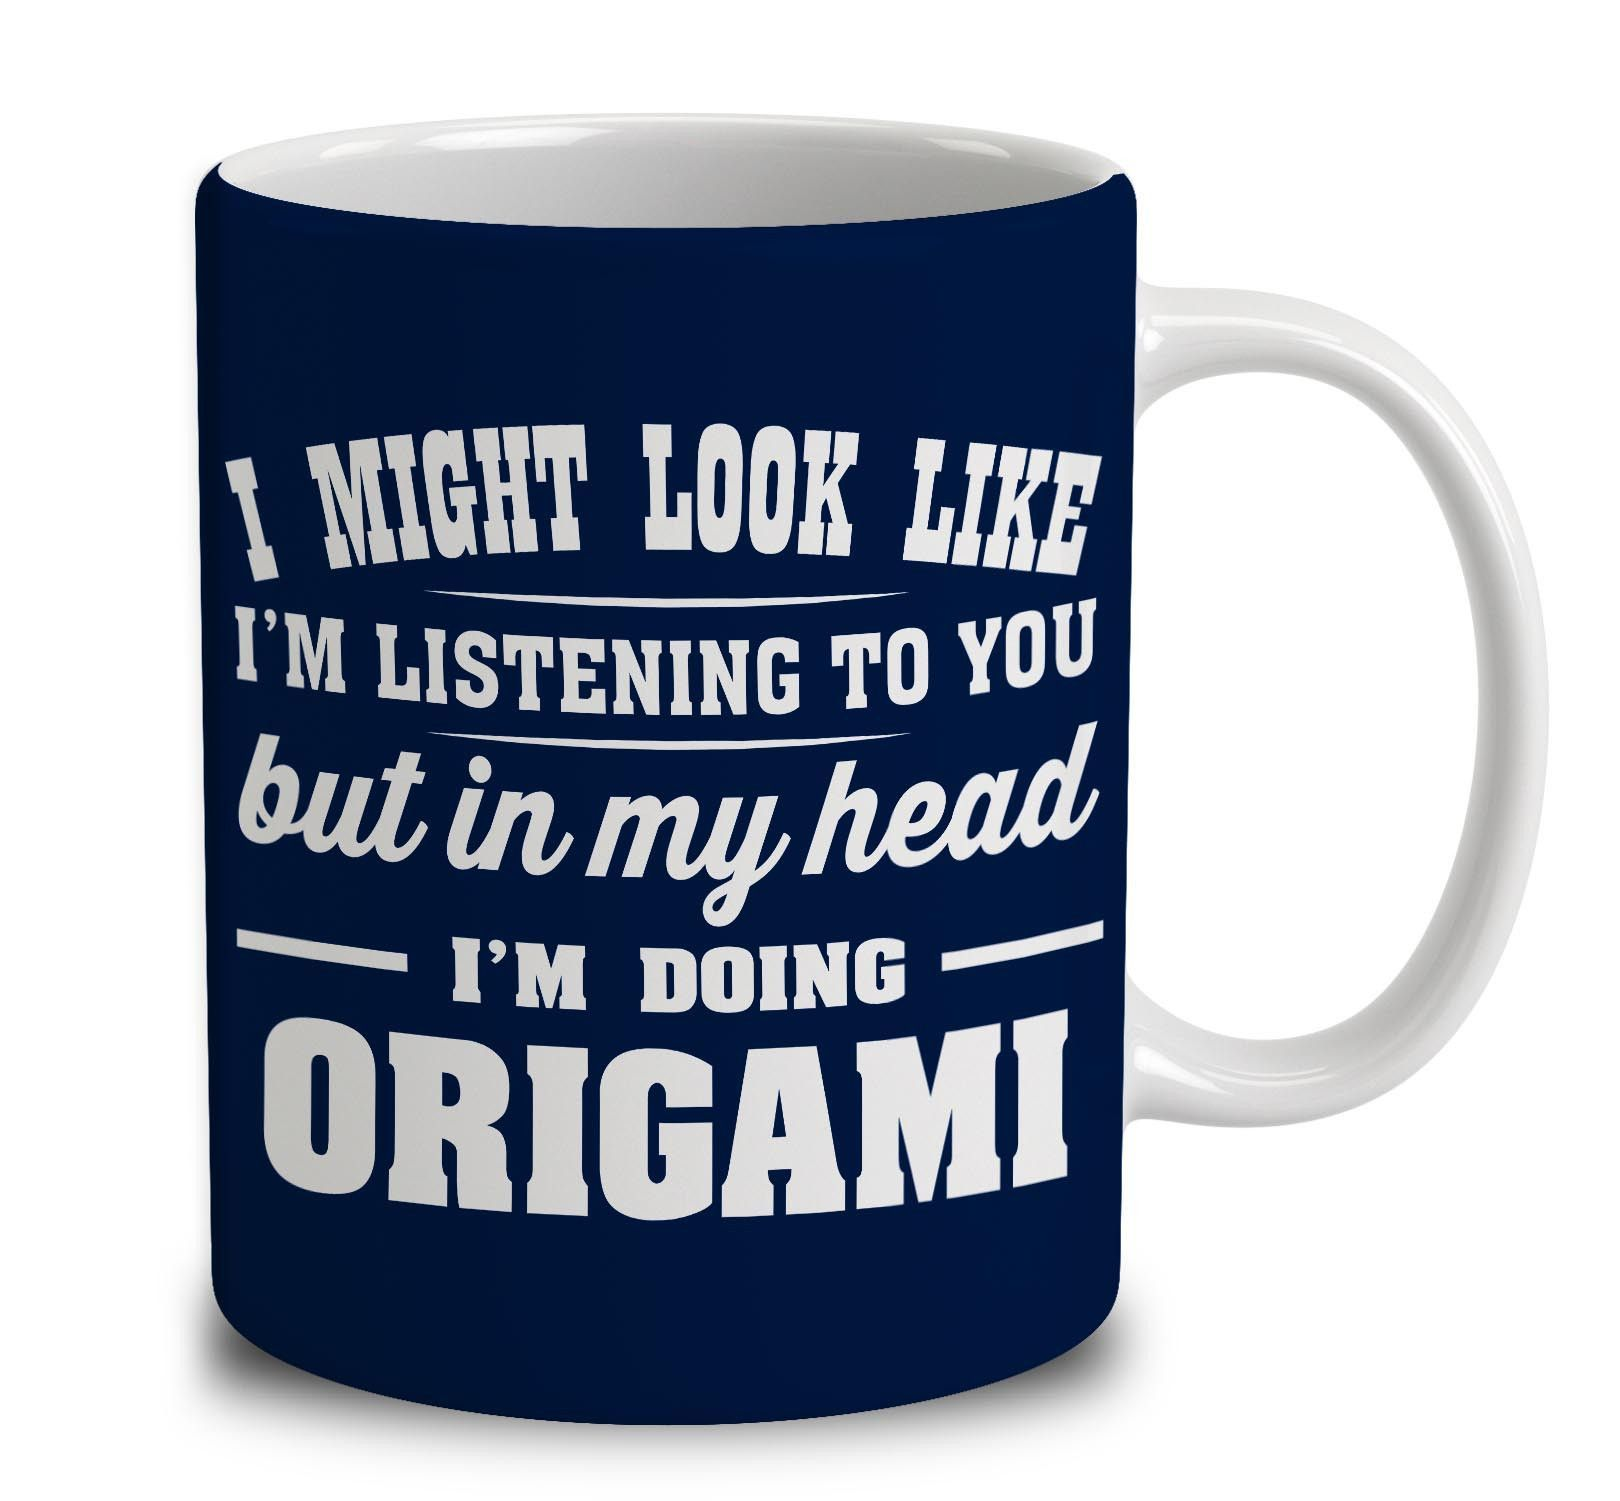 I Might Look Like I'm Listening To You, But In My Head I'm Doing Origami